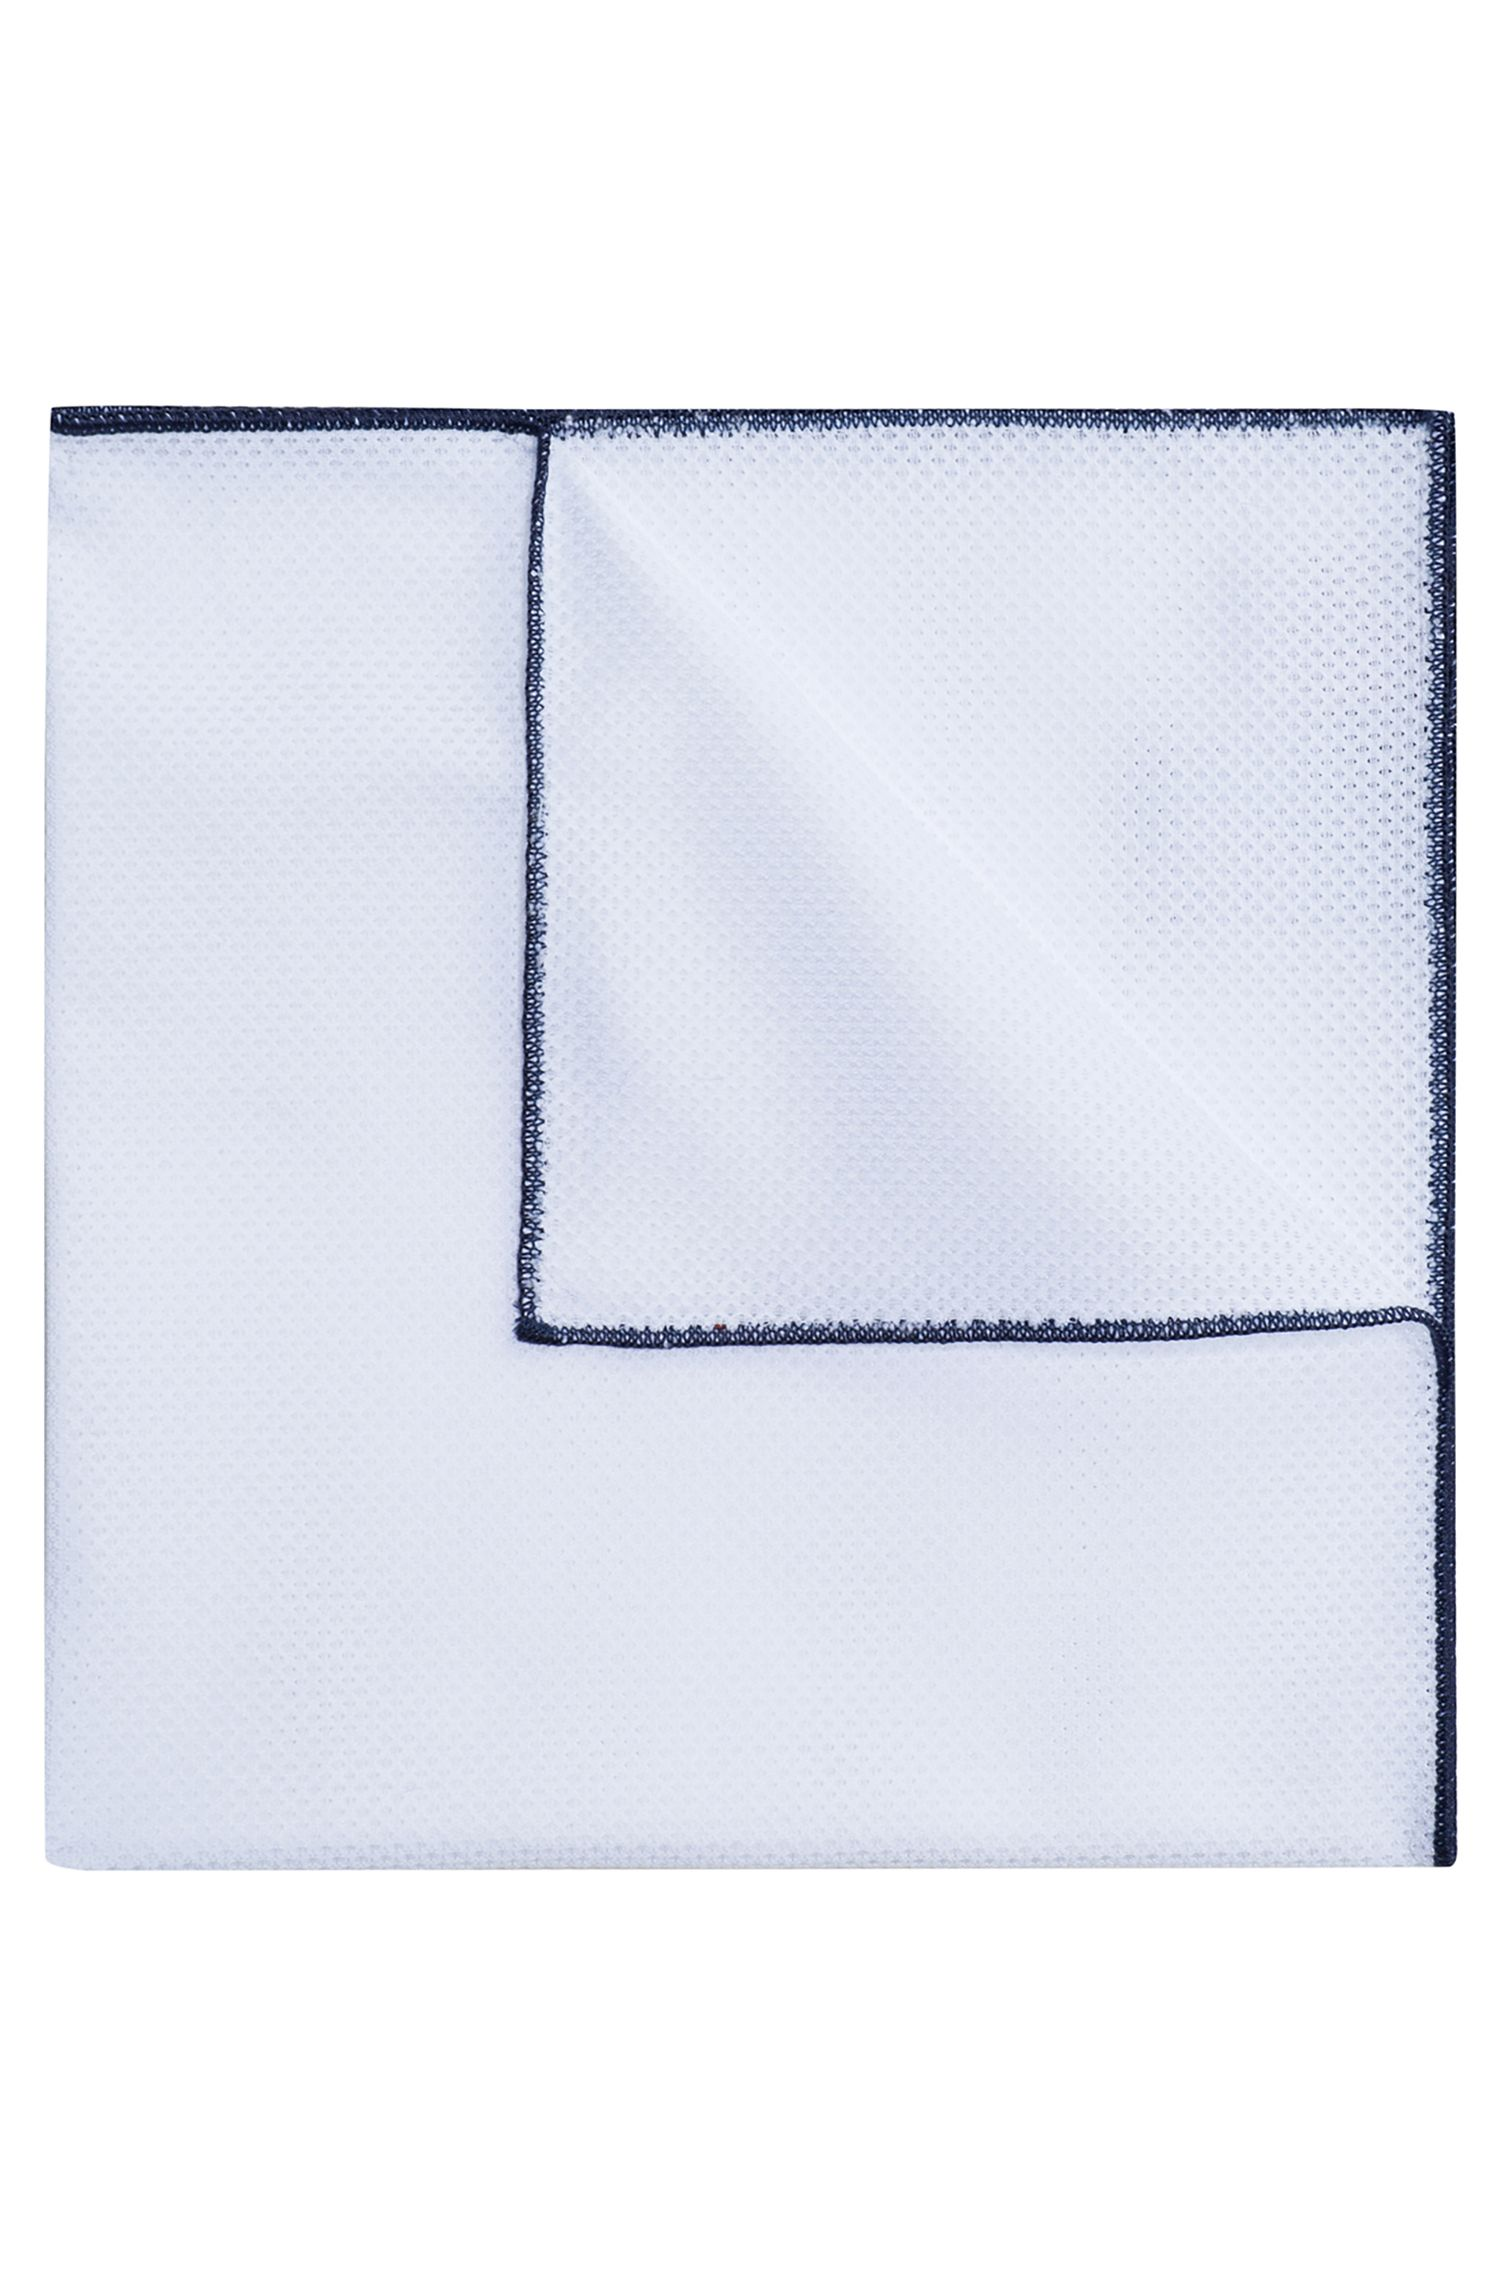 Cotton pocket square with contrast edges